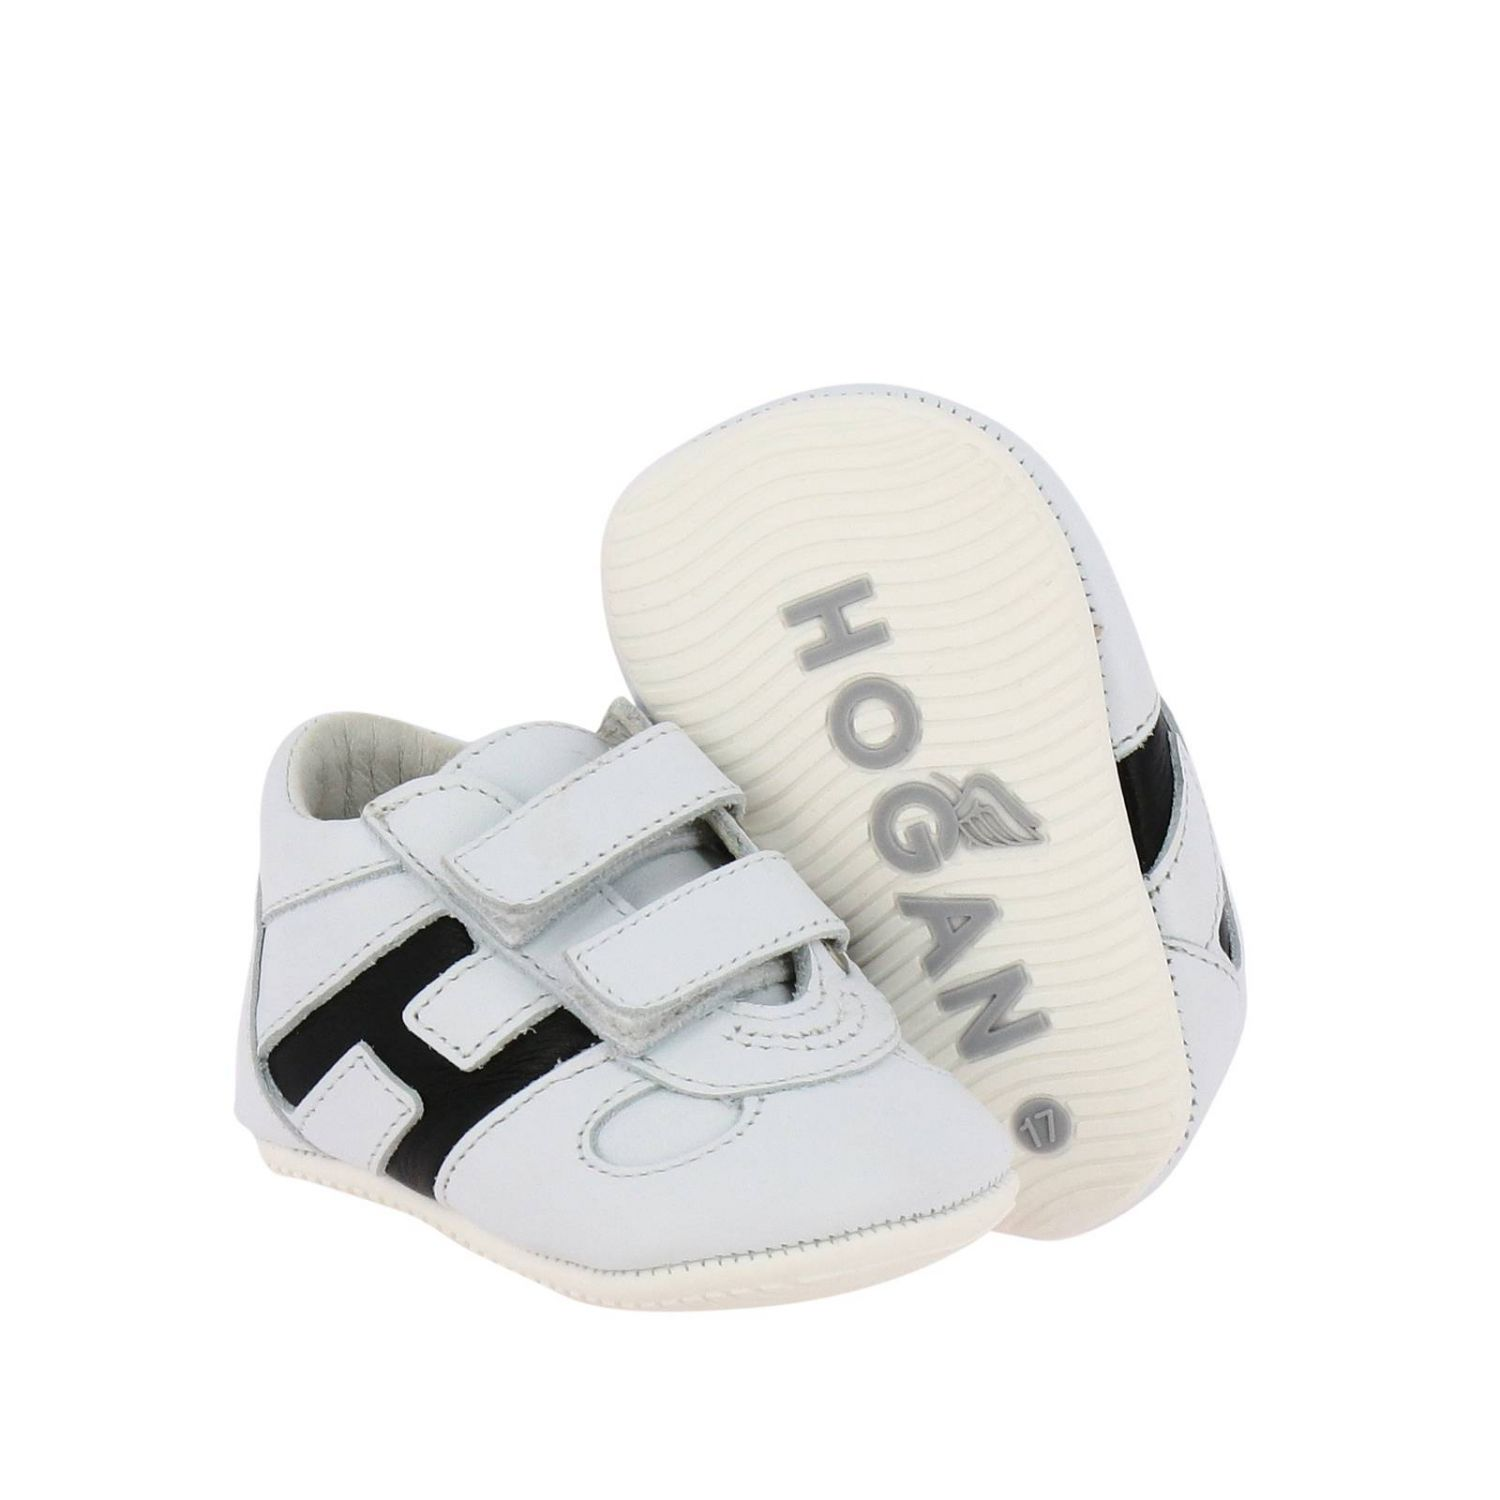 Olympia Hogan sneakers in leather with Velcro straps white 2